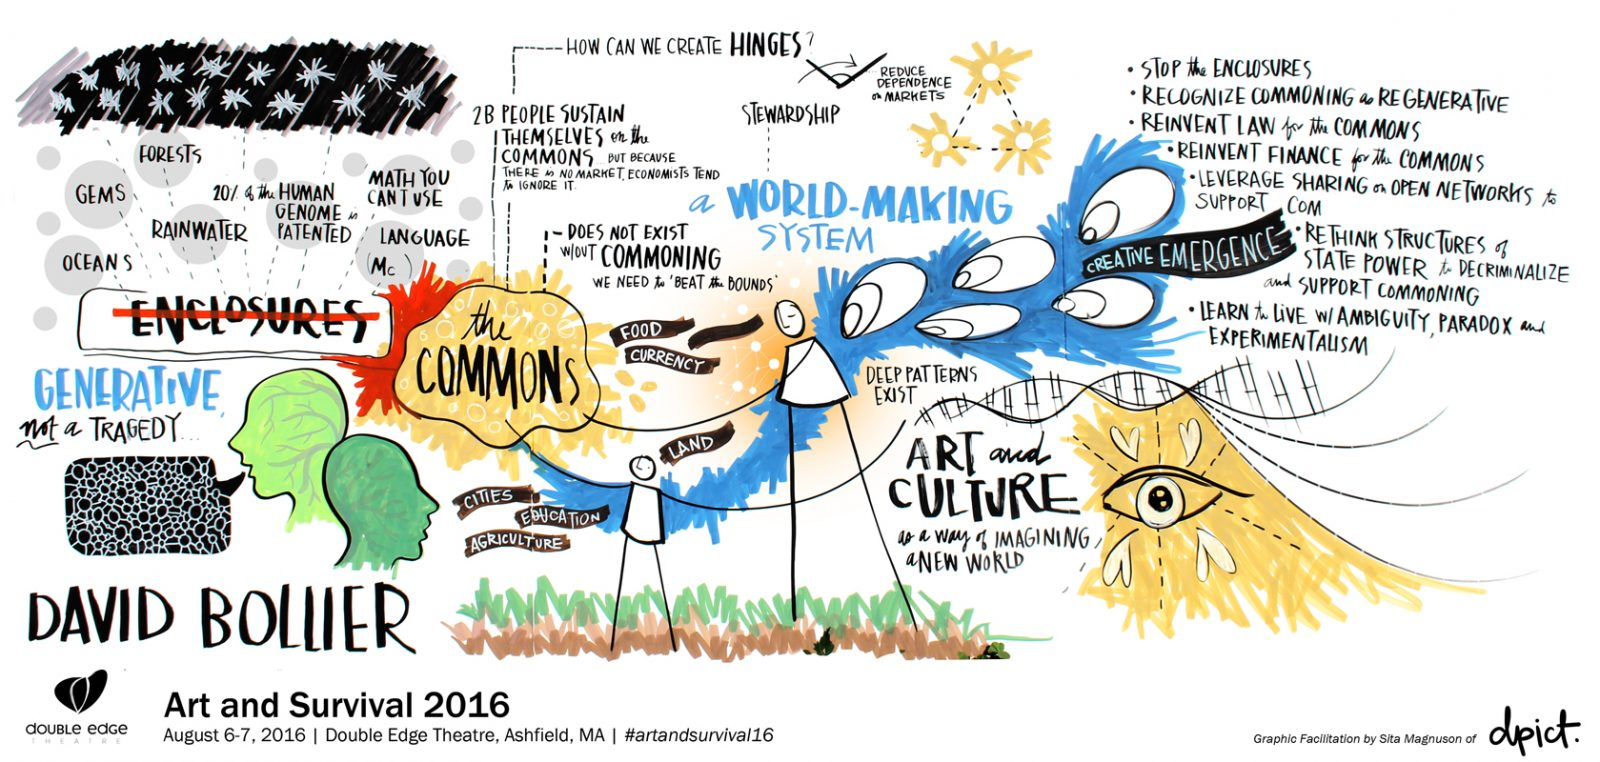 graphic facilitation notes on the commons